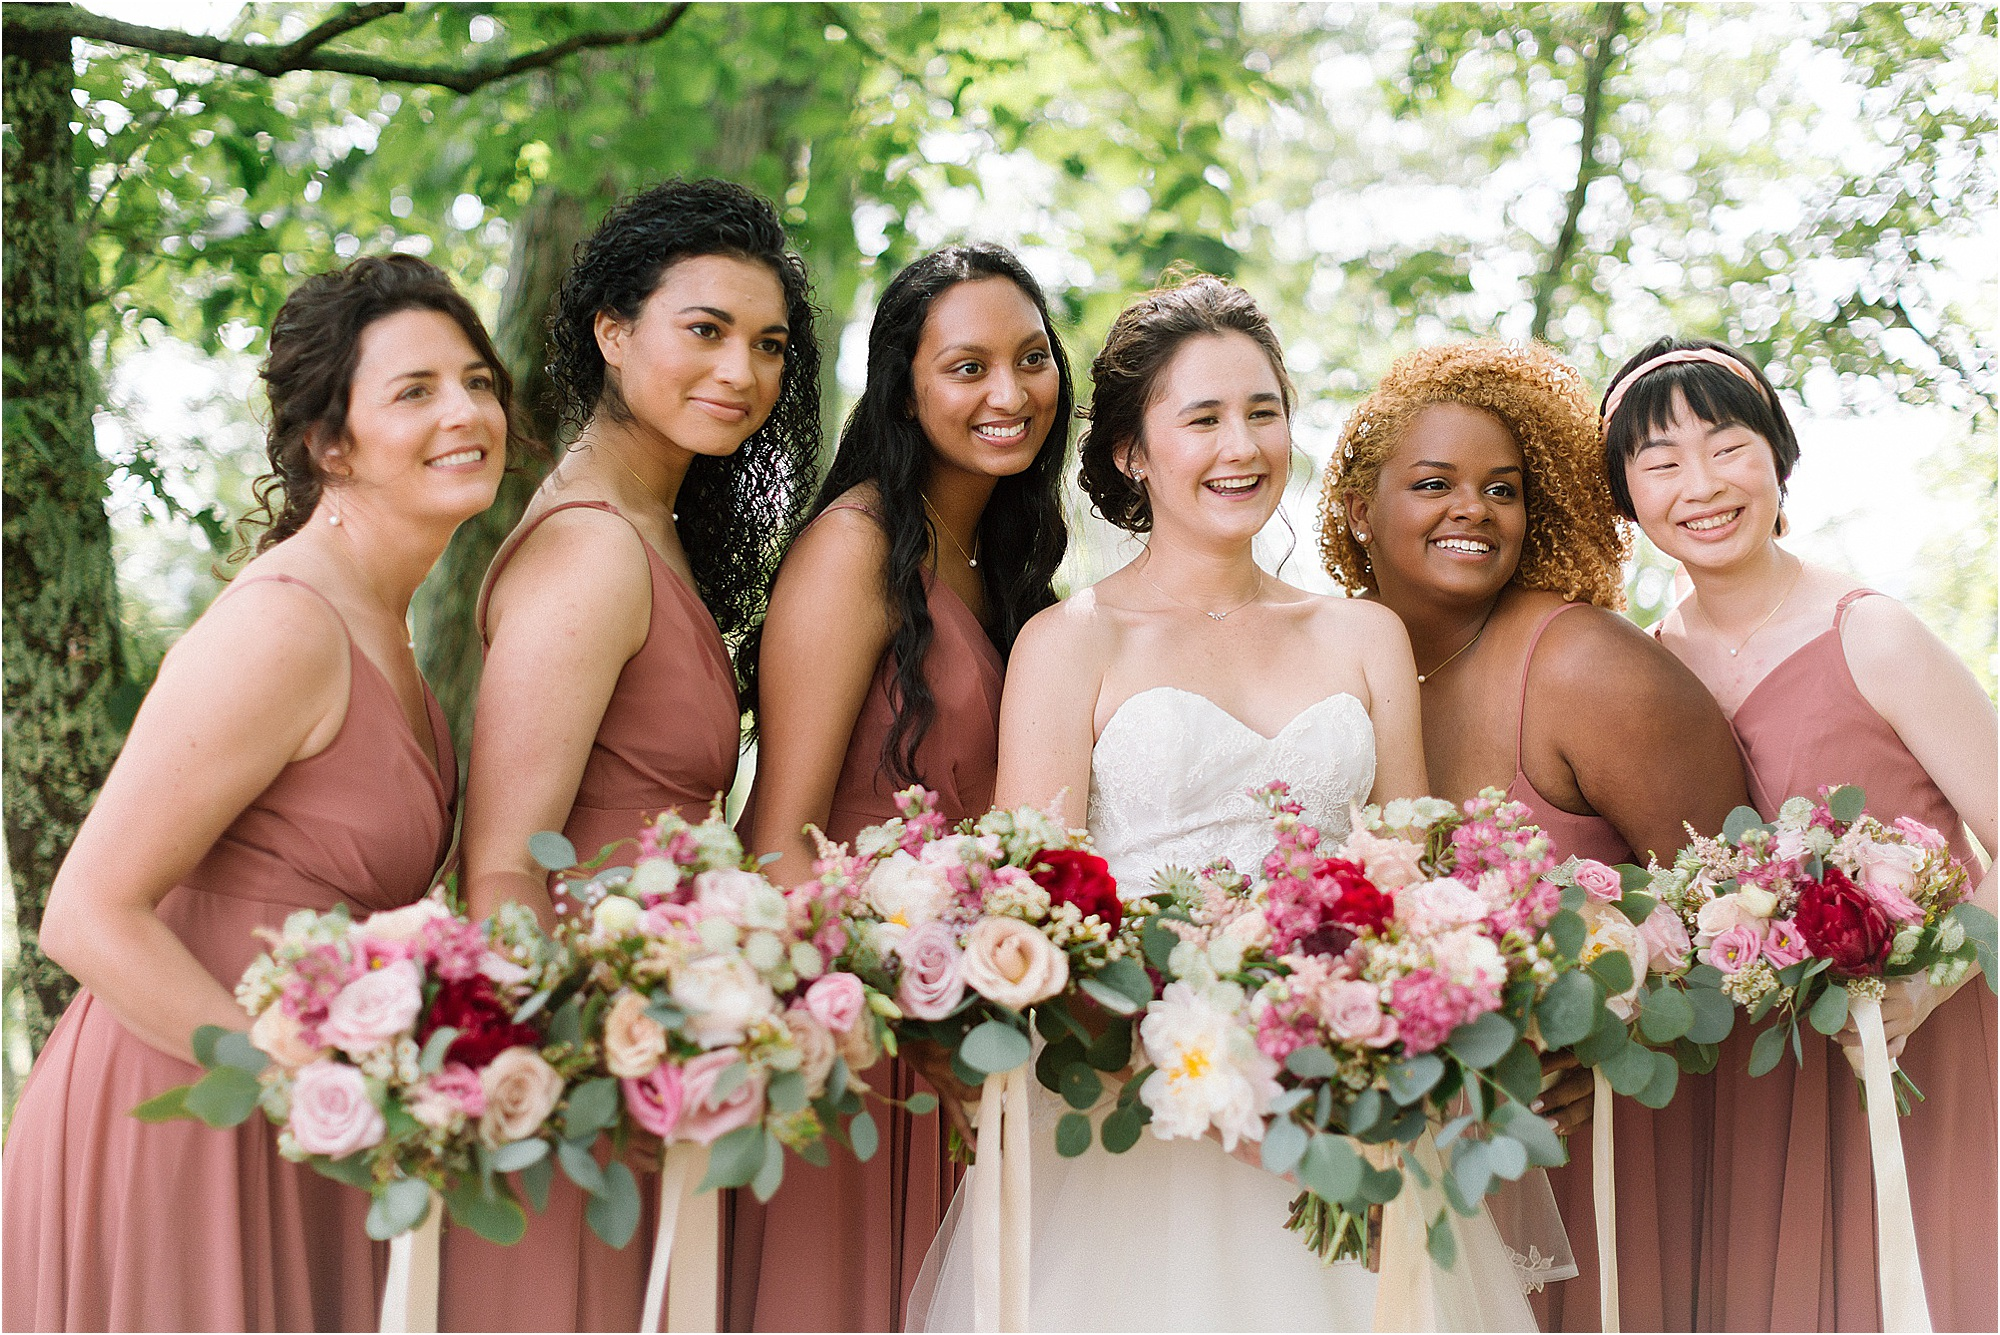 bride with bridesmaids in light pink wedding dresses